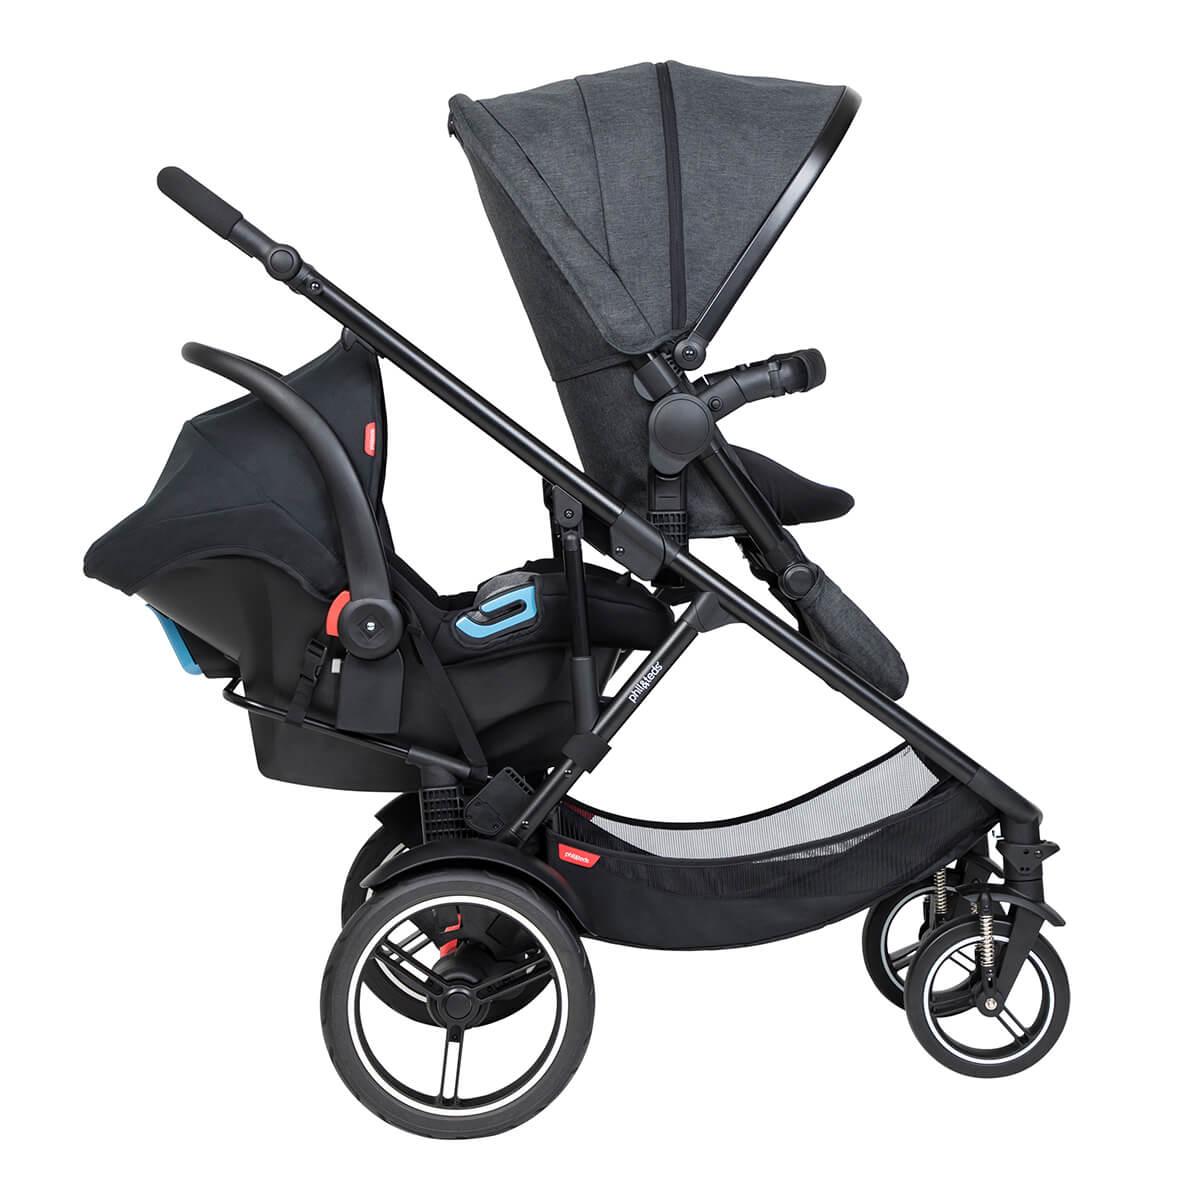 https://cdn.accentuate.io/4509529571416/19272668282968/philteds-voyager-buggy-in-forward-facing-mode-with-travel-system-in-the-rear-v1626484745538.jpg?1200x1200